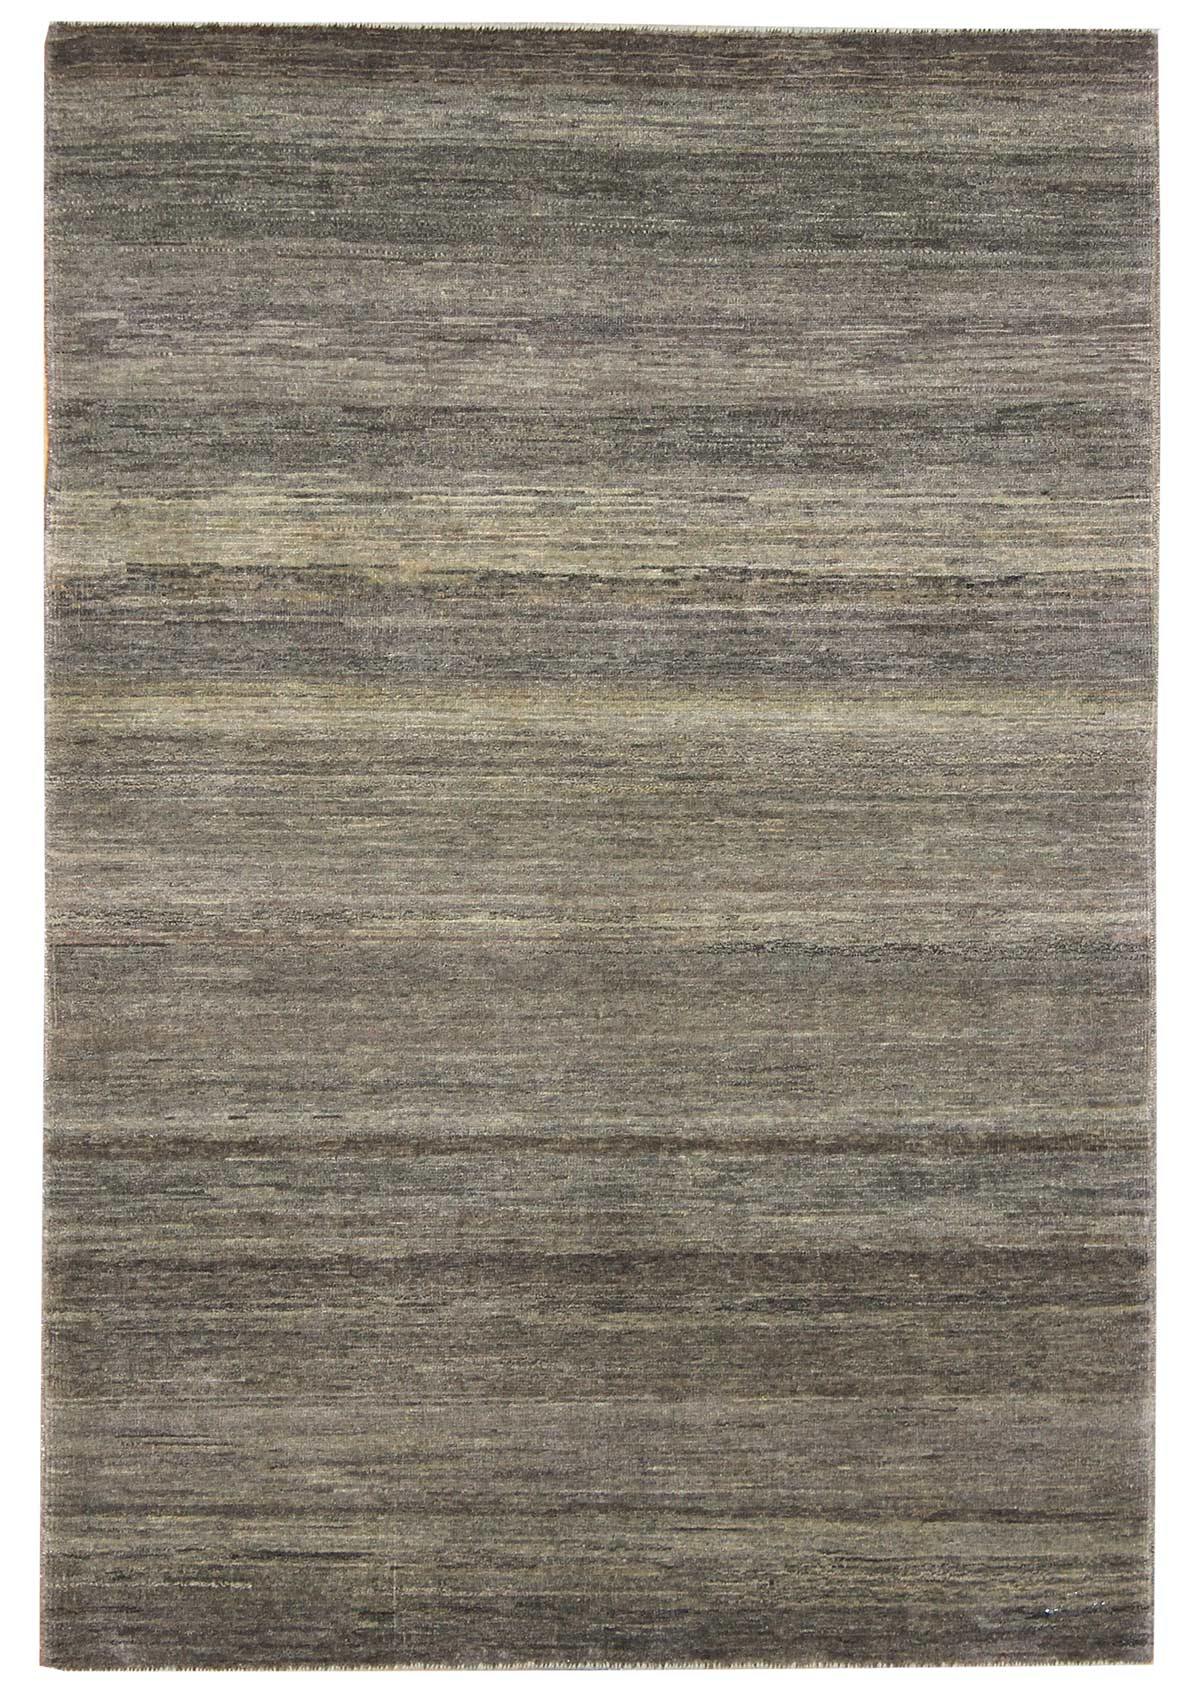 Plain Gabbeh Handwoven Contemporary Rug